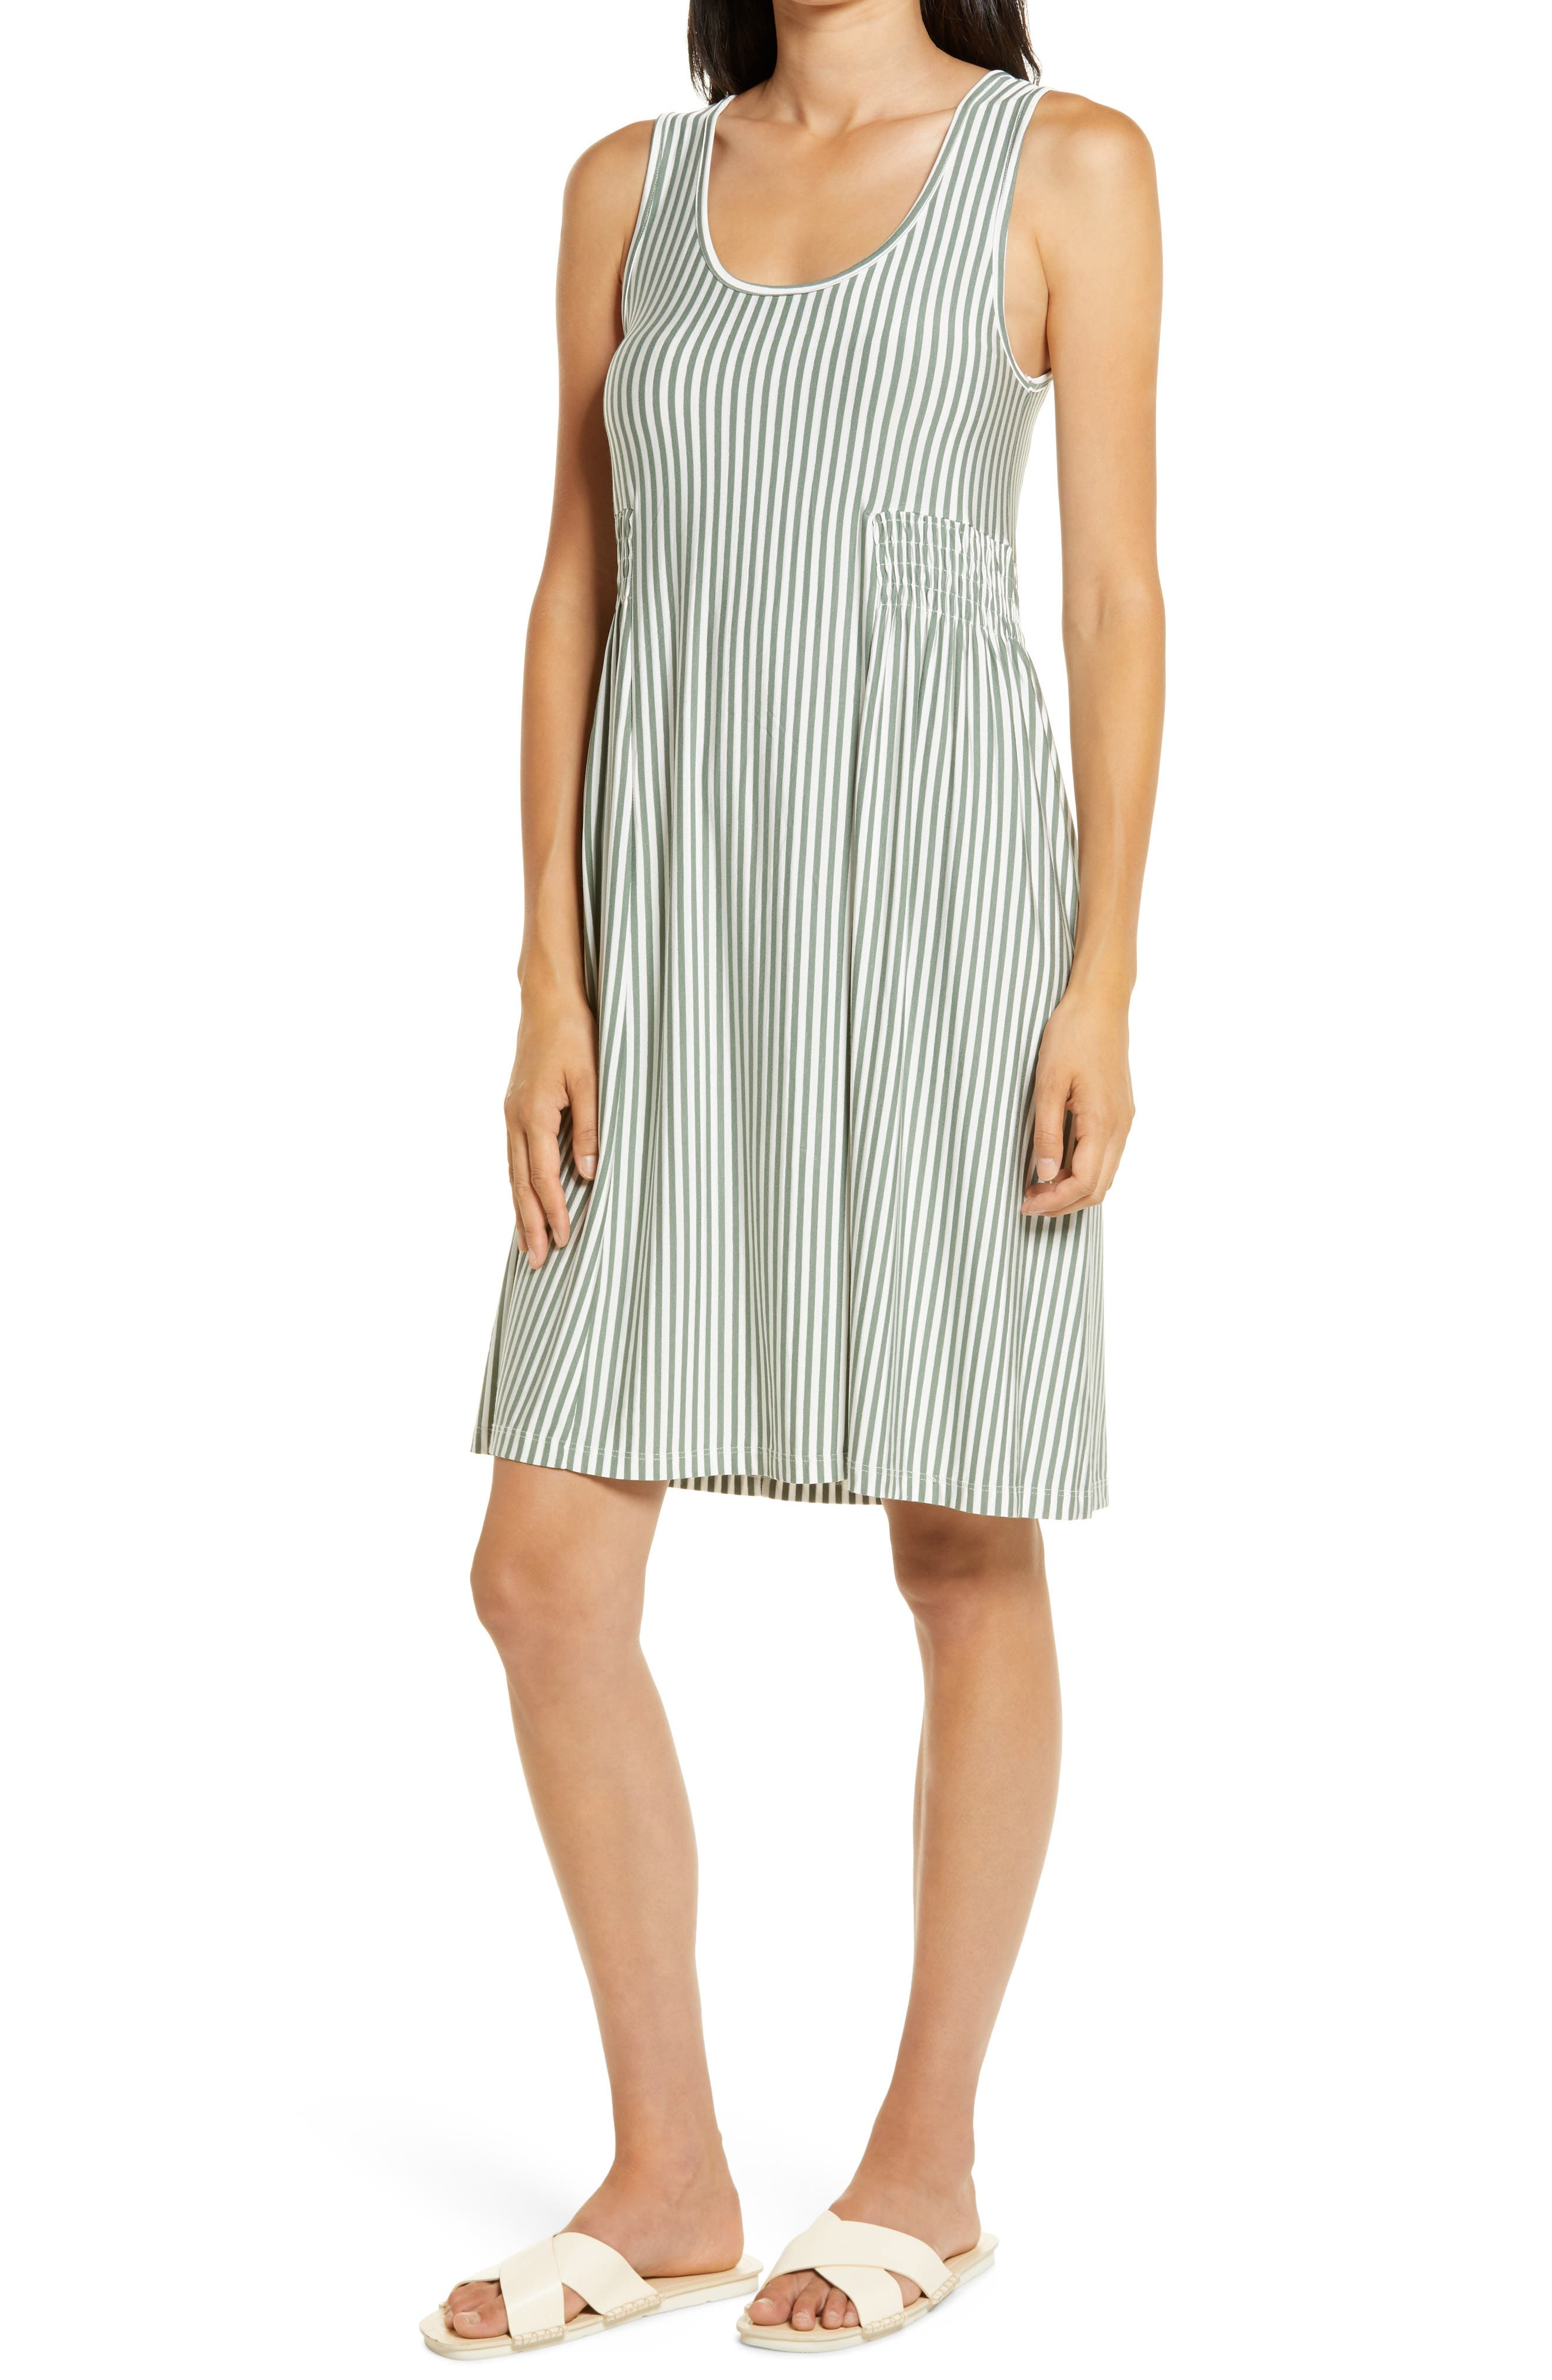 Image of VERO MODA Polly Sleeveless Dress